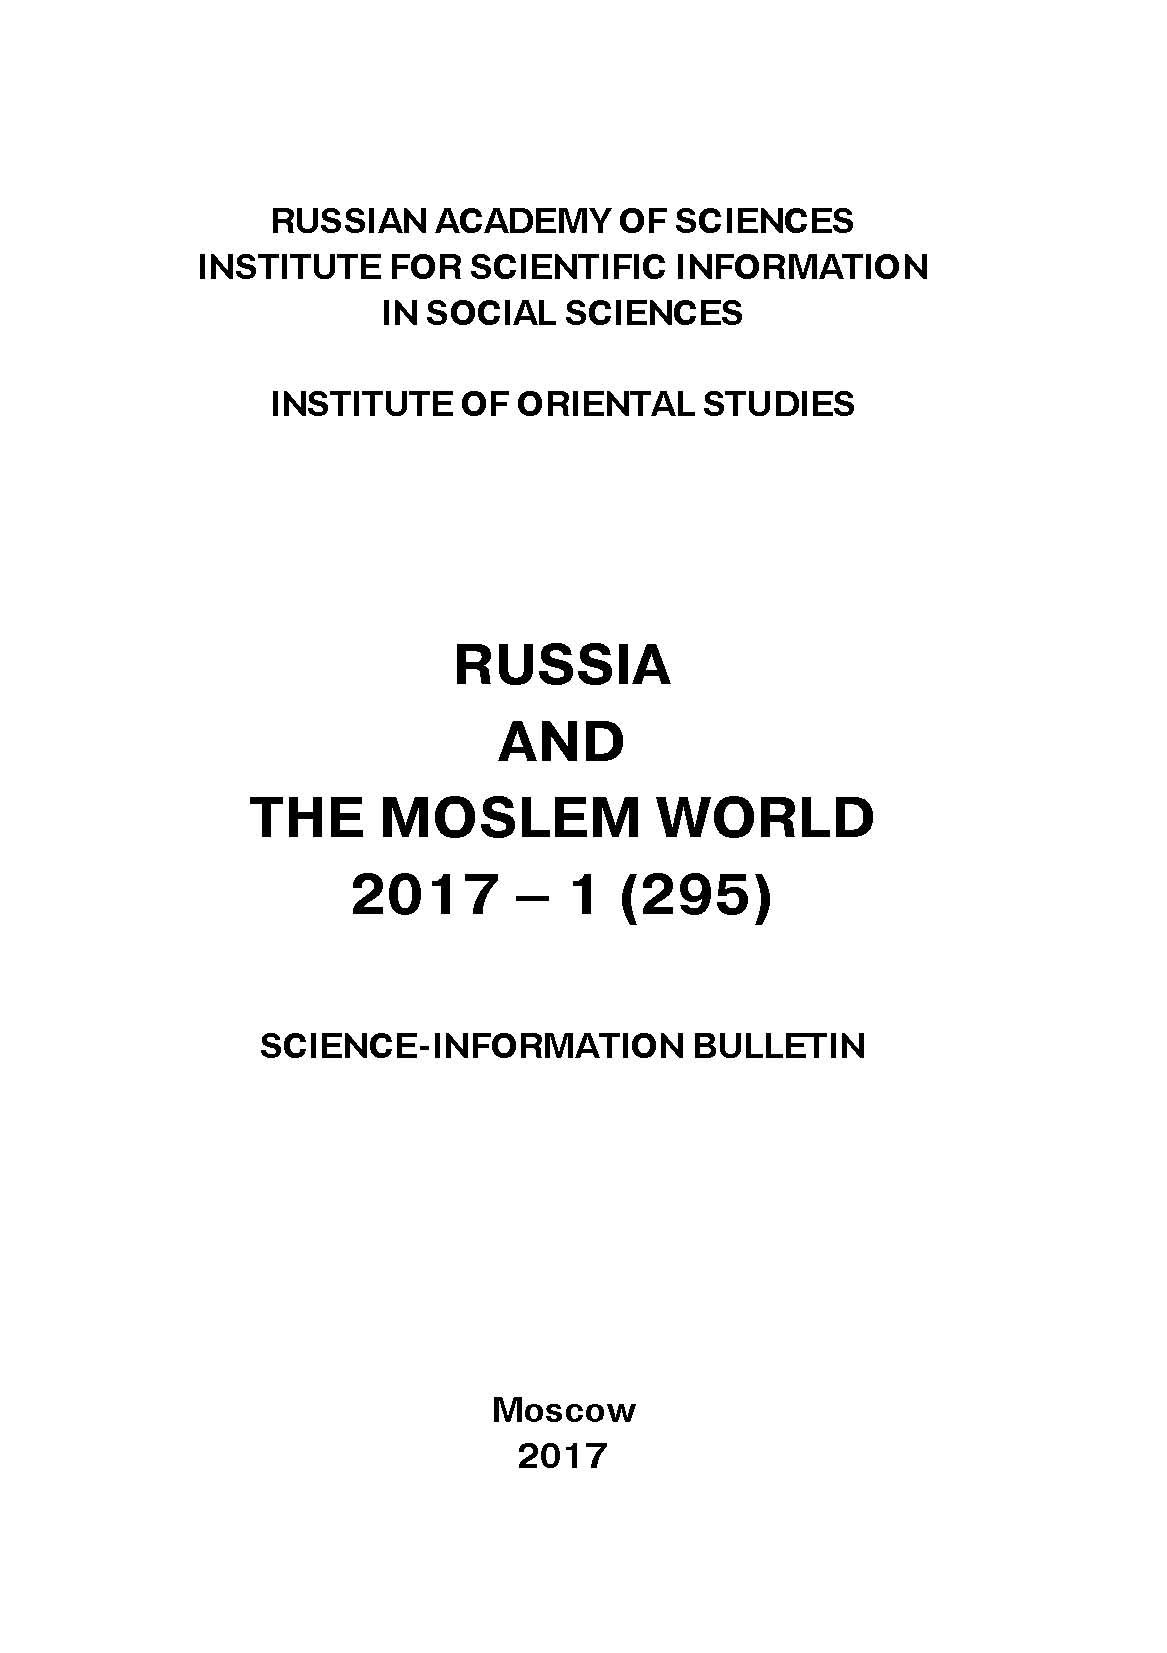 Russia and the Moslem World № 01 / 2017